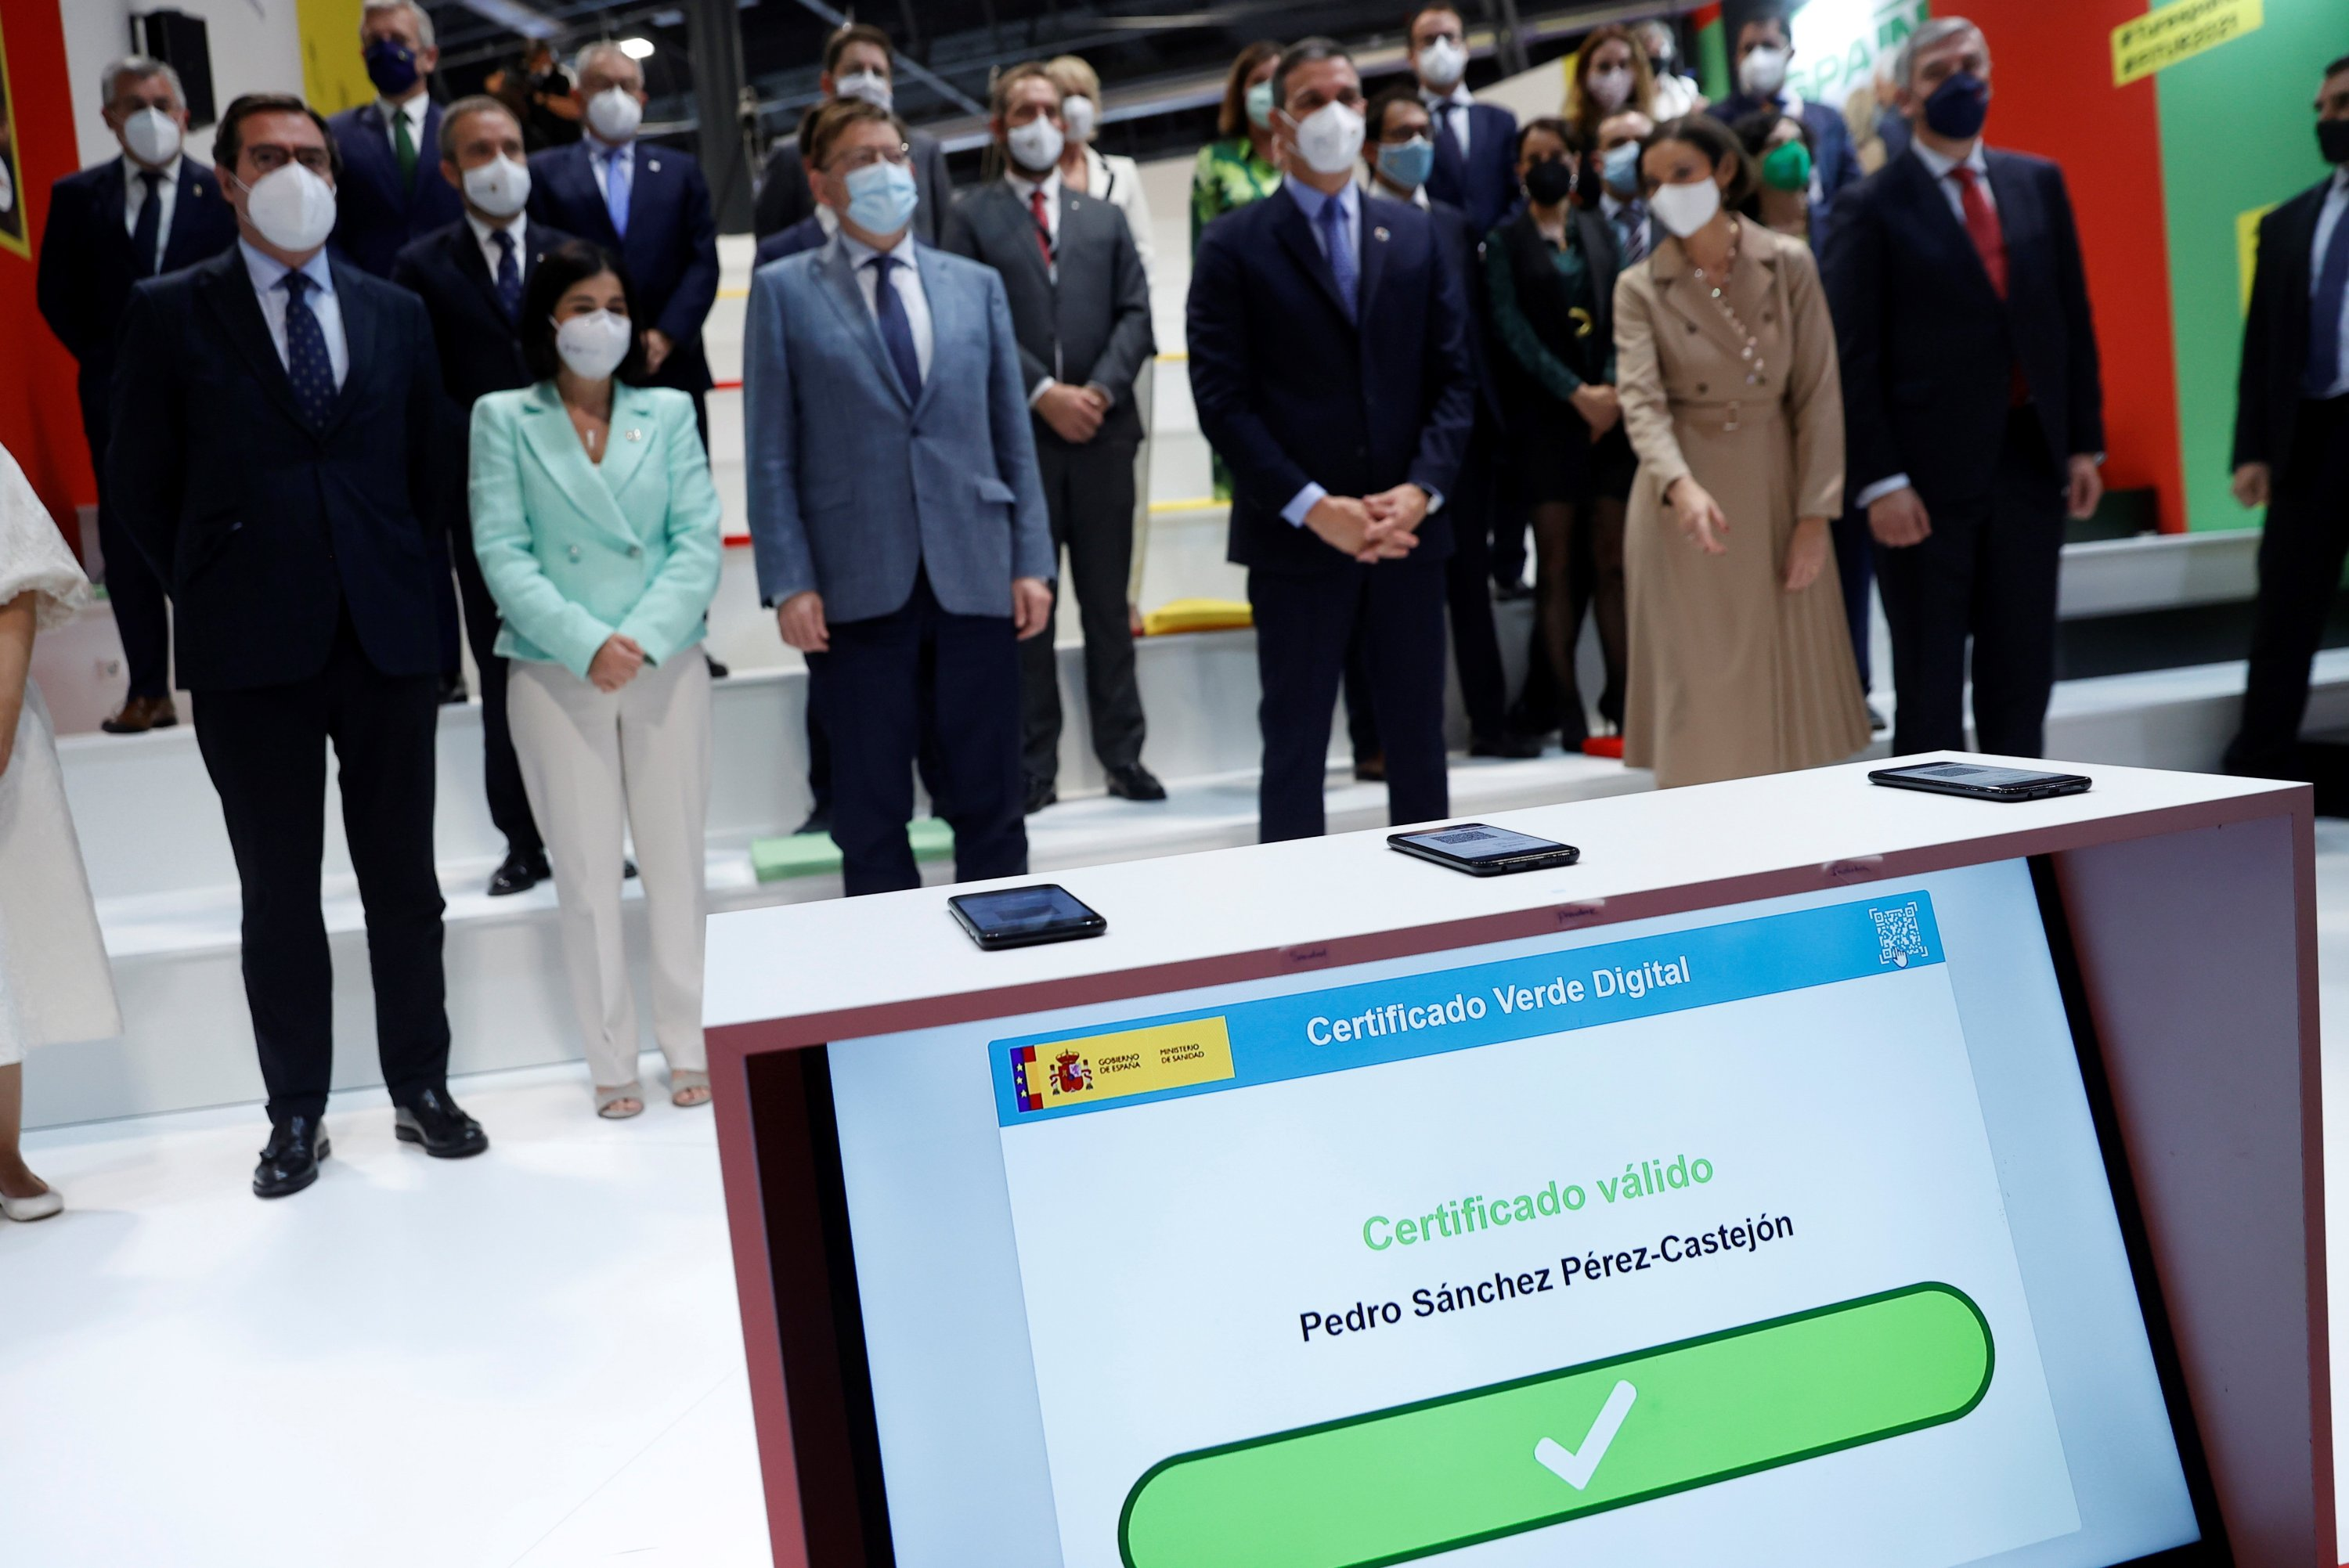 The Green Digital Certificate – a certificate that records that a person has been vaccinated, has passed COVID-19 or has had a negative PCR test – of Spanish Prime Minister Pedro Sanchez (3rd R) shows on a screen that it has been validated, during its presentation at the International Tourism Fair Fitur 2021 at the Ifema pavilion in Madrid, Spain, May 21, 2021. (EPA)